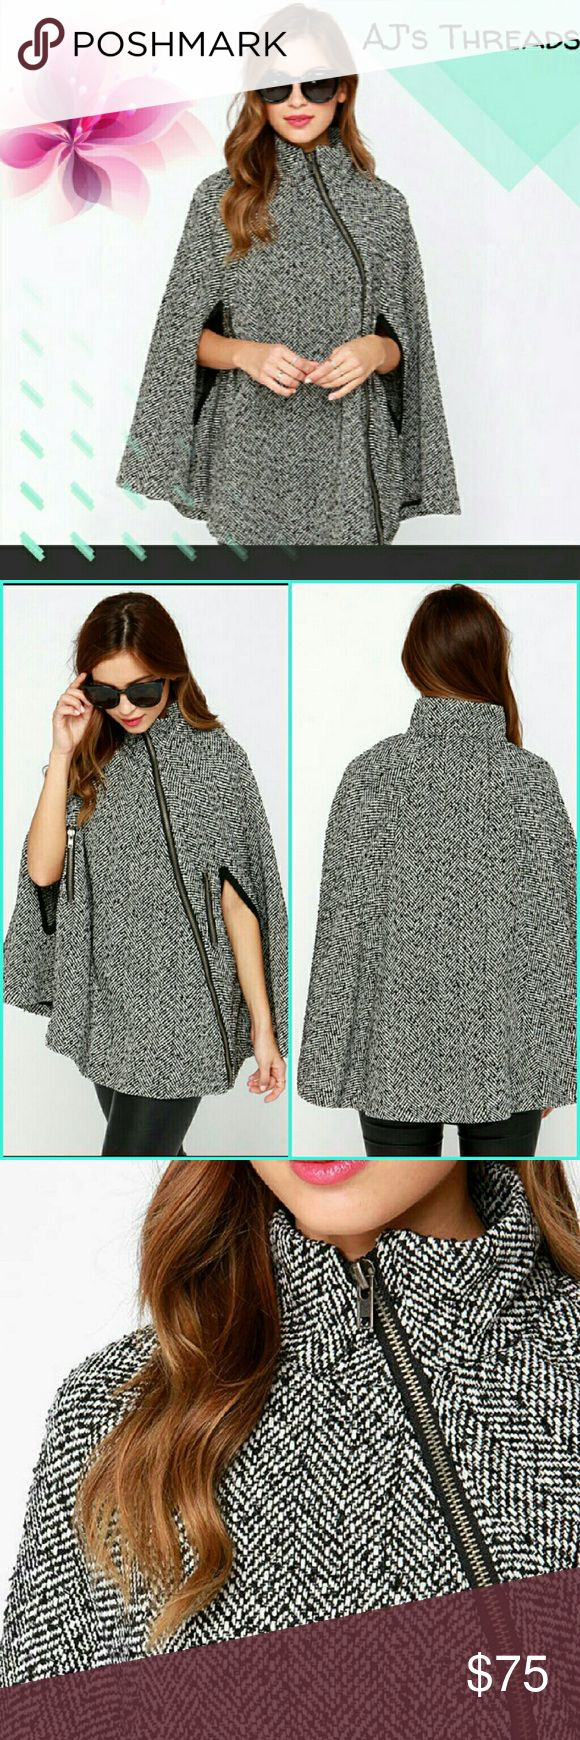 Spotted while shopping on Poshmark: Tweed side zip fashion cape coat! #poshmark #fashion #shopping #style #Jackets & Blazers